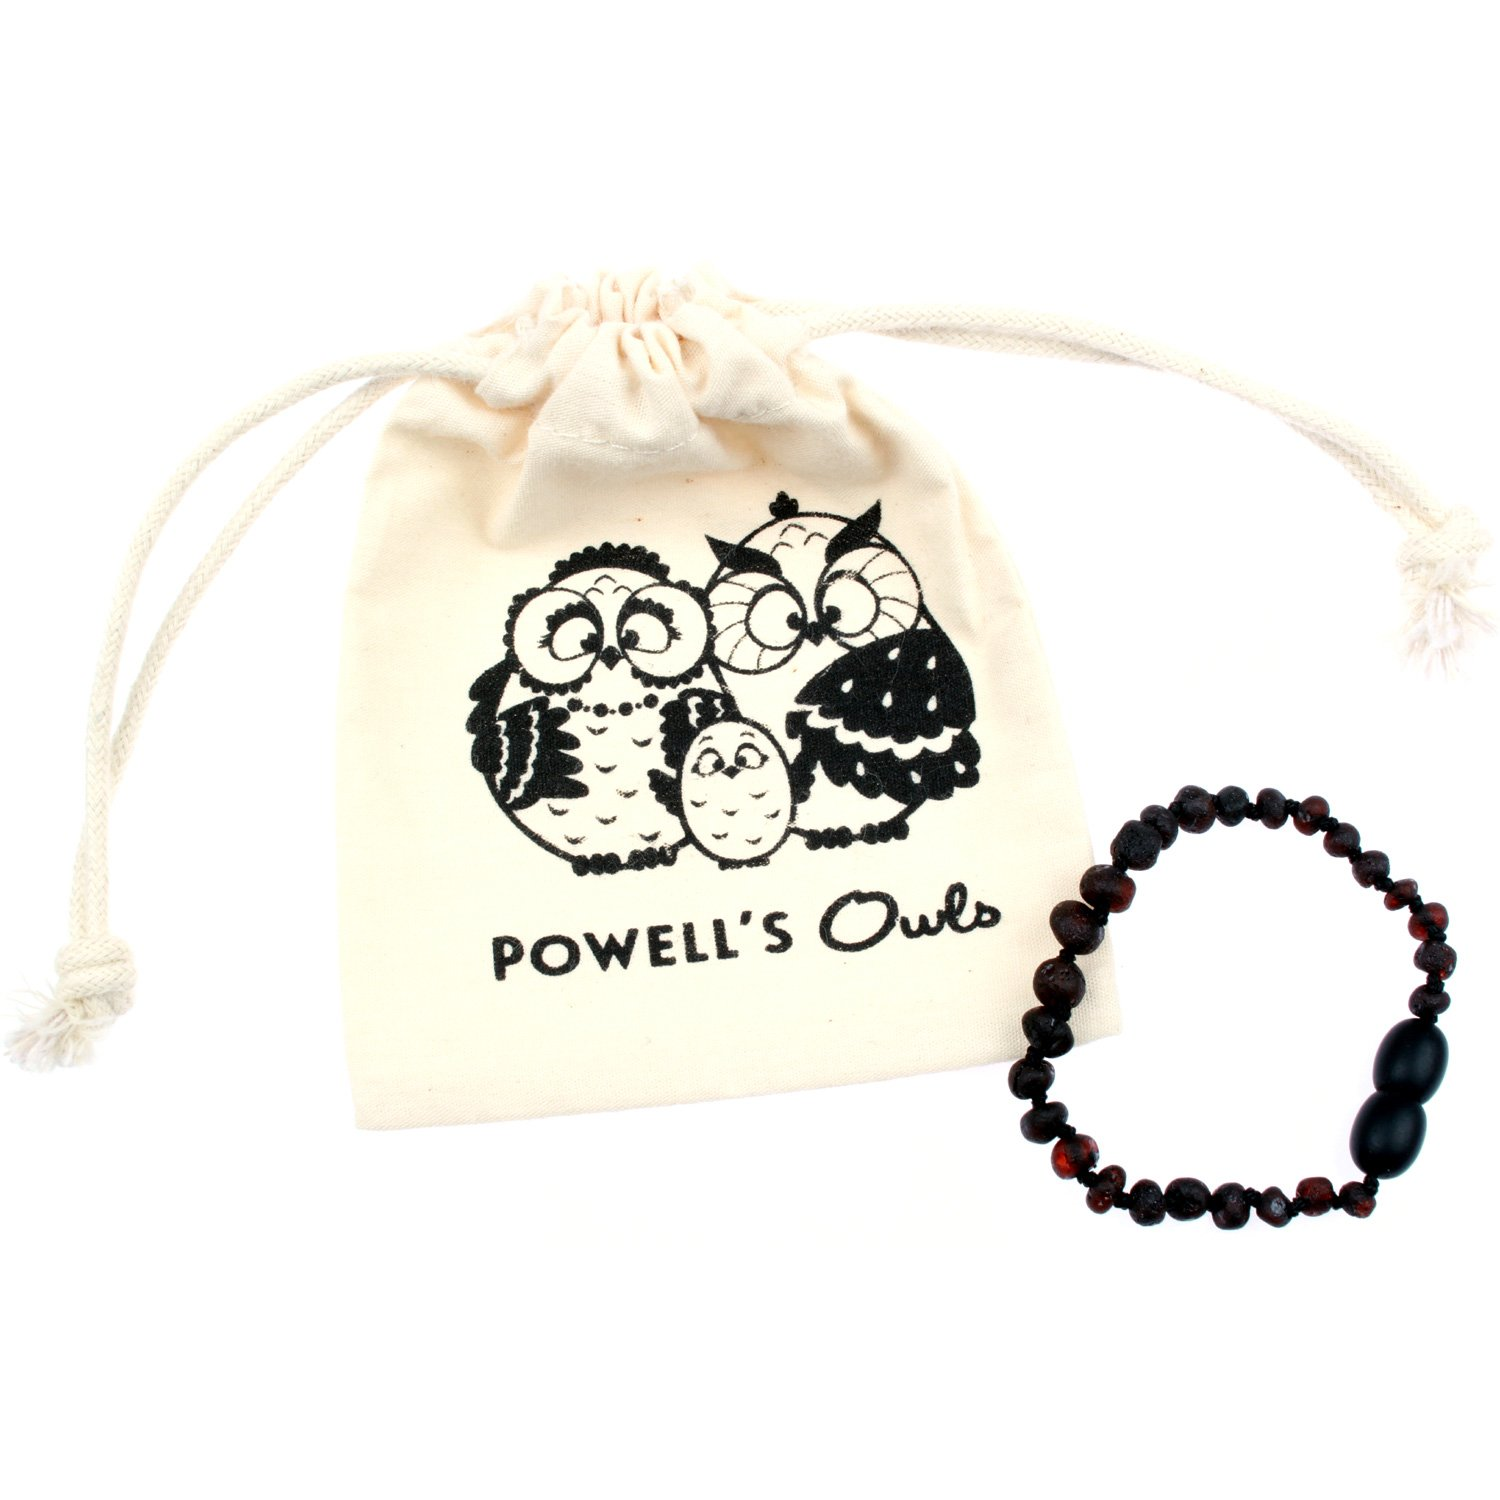 Baltic Amber Teething Bracelet / Teething Anklet For Babies, Toddlers & Kids (Unisex, Raw Unpolished Cherry, 5.5) Lab-Tested, 100% Certified Natural Baltic Amber - All Natural Teething Pain Relief 5.5) Lab-Tested Powell's Owls